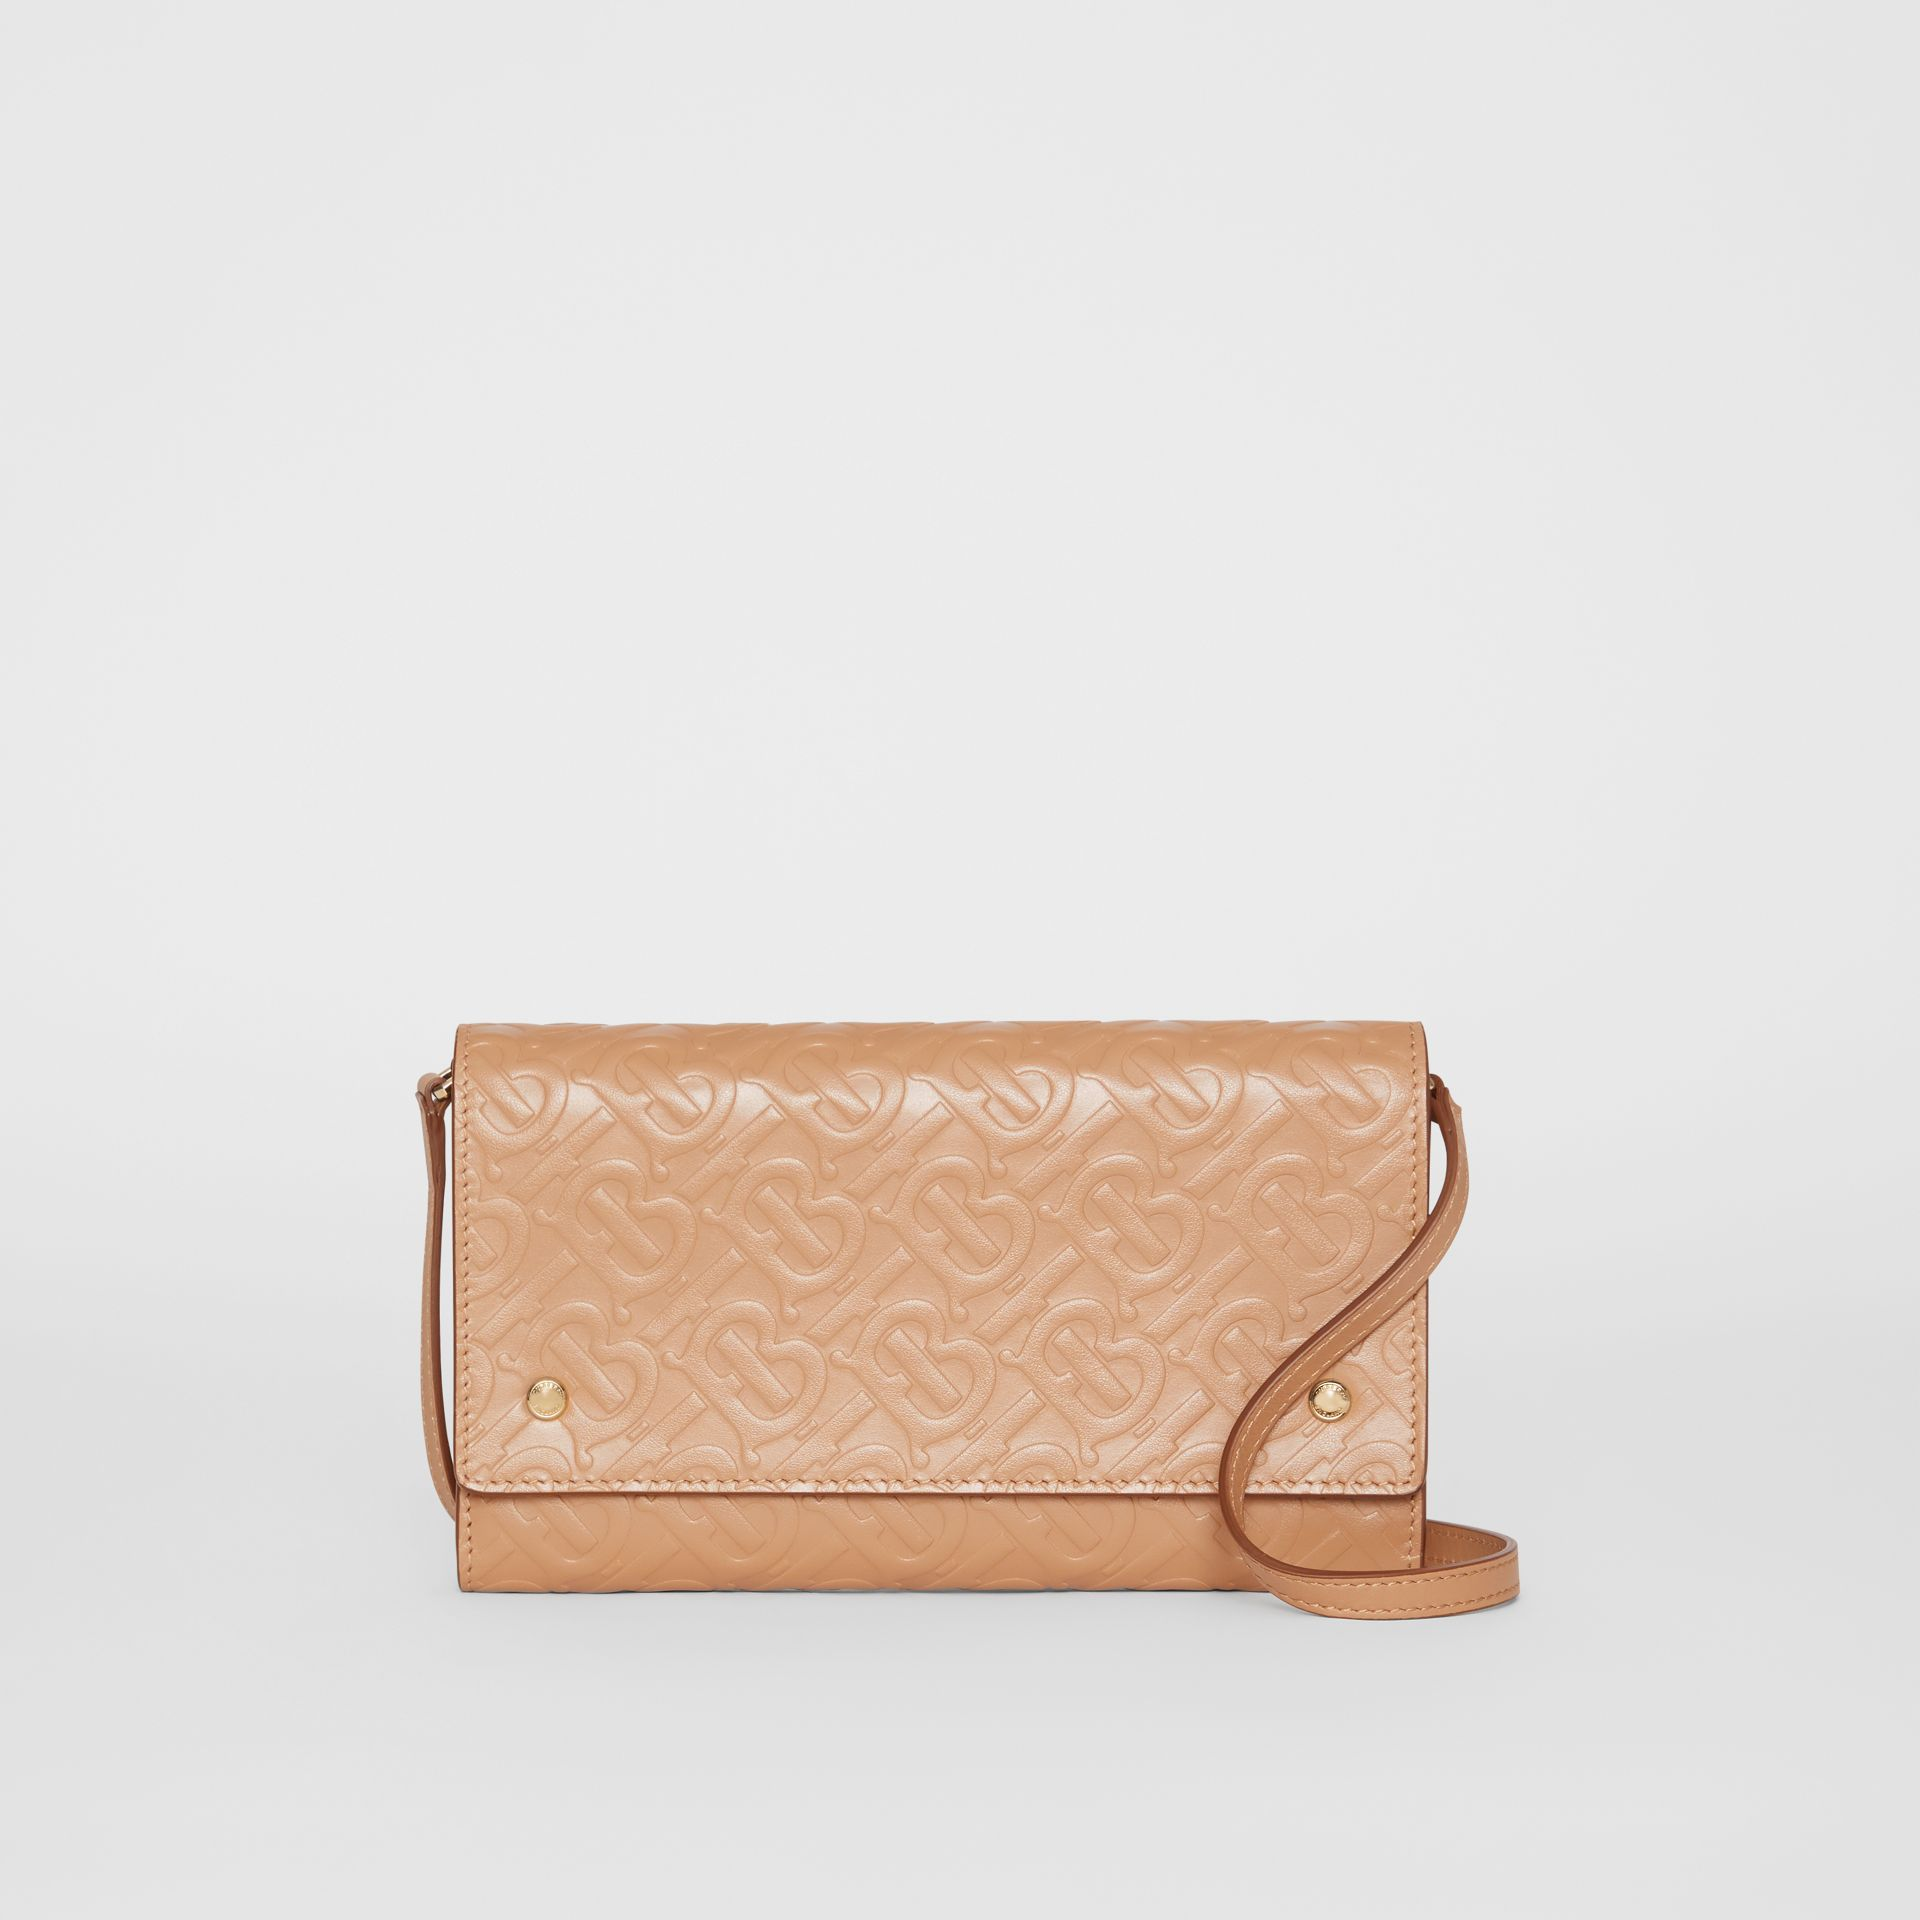 Monogram Leather Wallet with Detachable Strap in Light Camel - Women | Burberry Singapore - gallery image 0